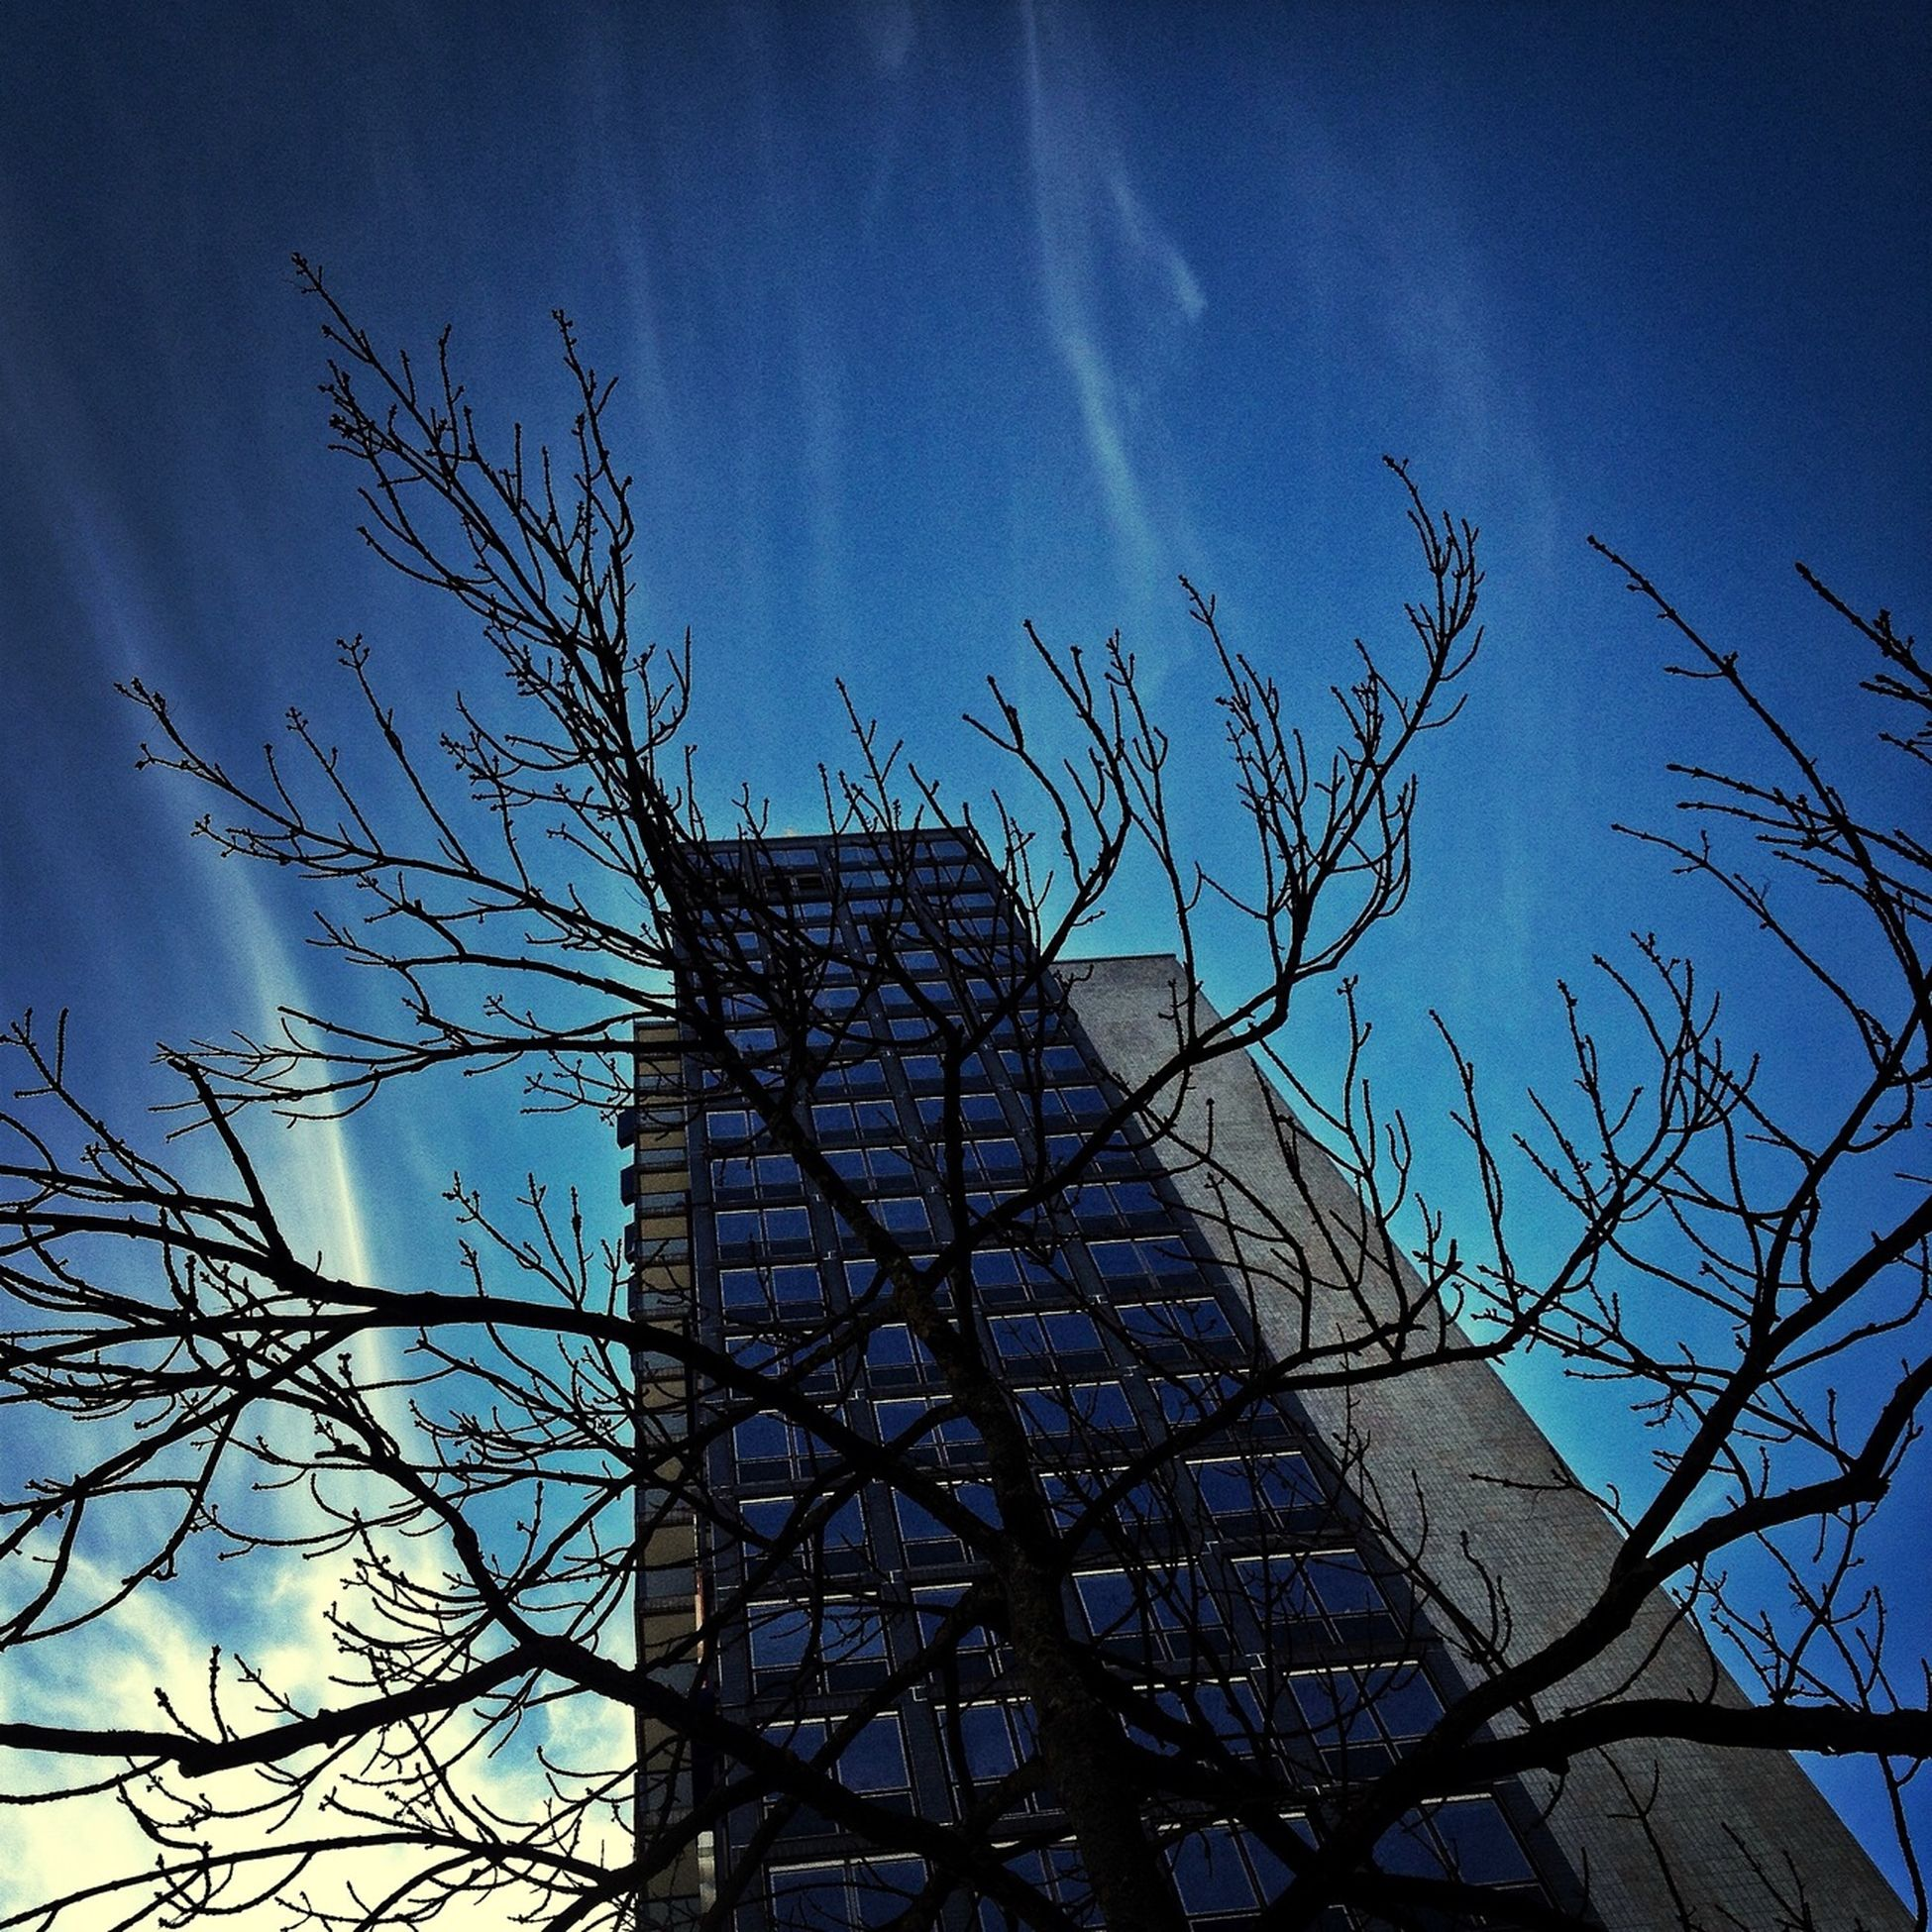 low angle view, architecture, built structure, bare tree, building exterior, sky, blue, branch, tree, tower, clear sky, day, sunlight, outdoors, tall - high, no people, silhouette, building, city, architectural feature